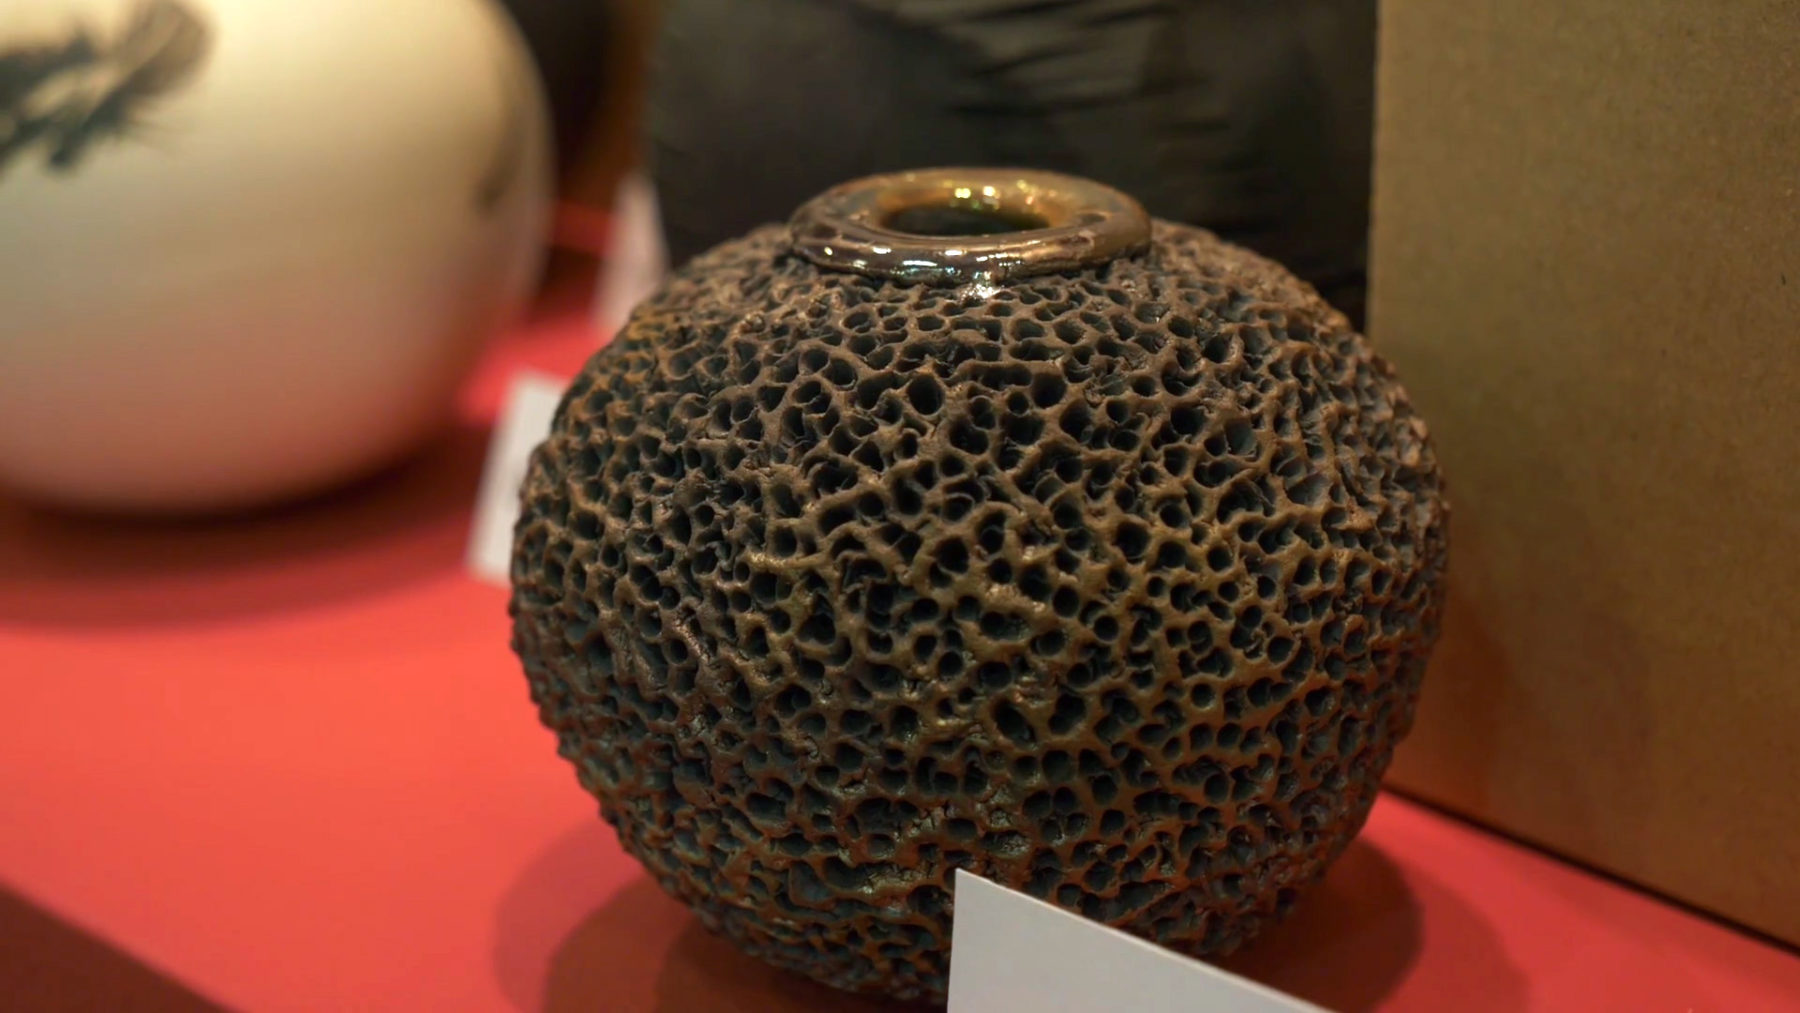 Sponge Whispering Globe - Masterpieces of Hungarian Craft - Budapest